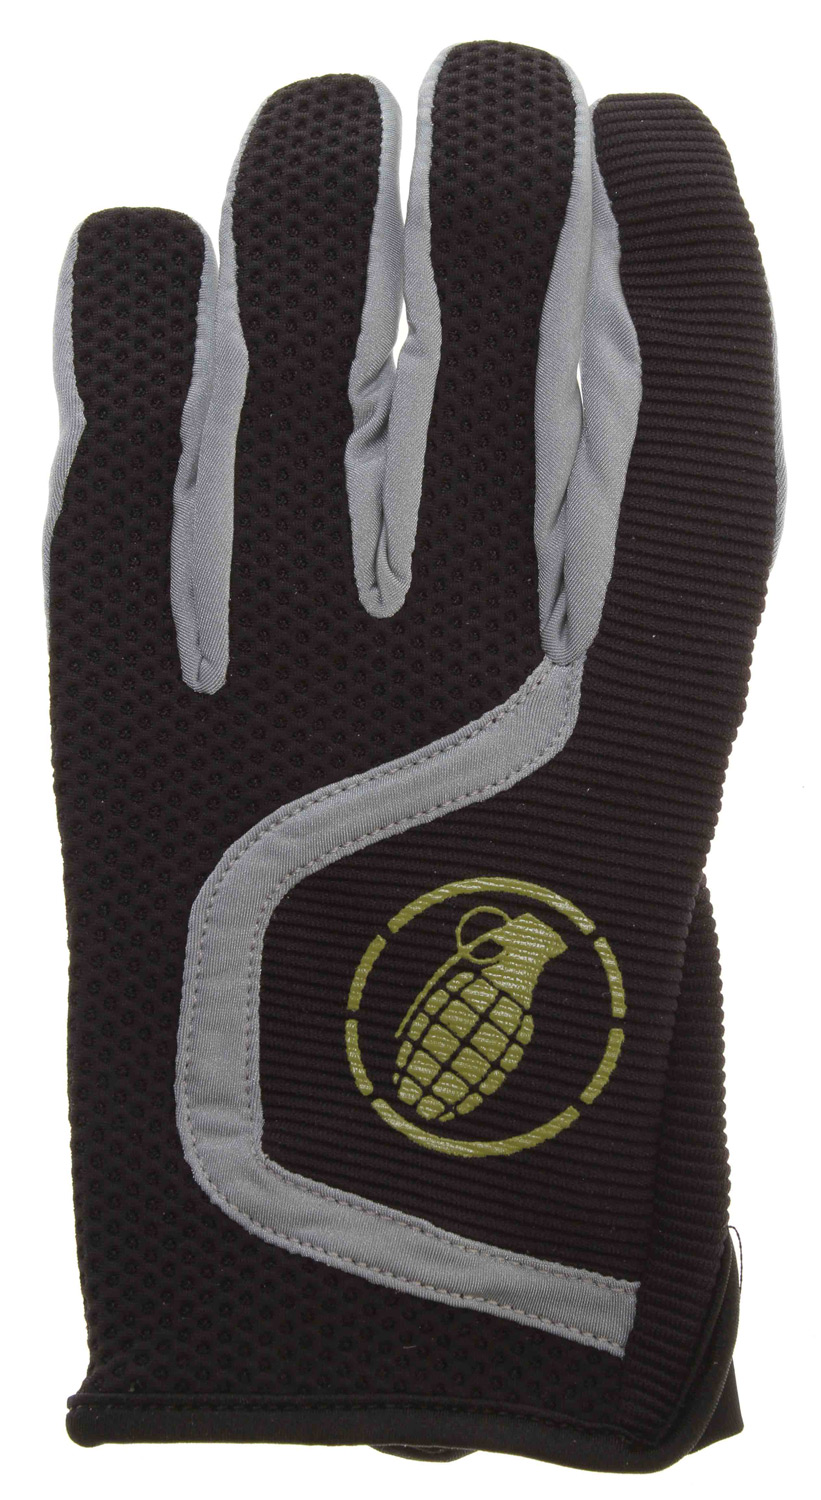 MTB Grenade Flyer Bike Gloves Black/Lime - $10.37